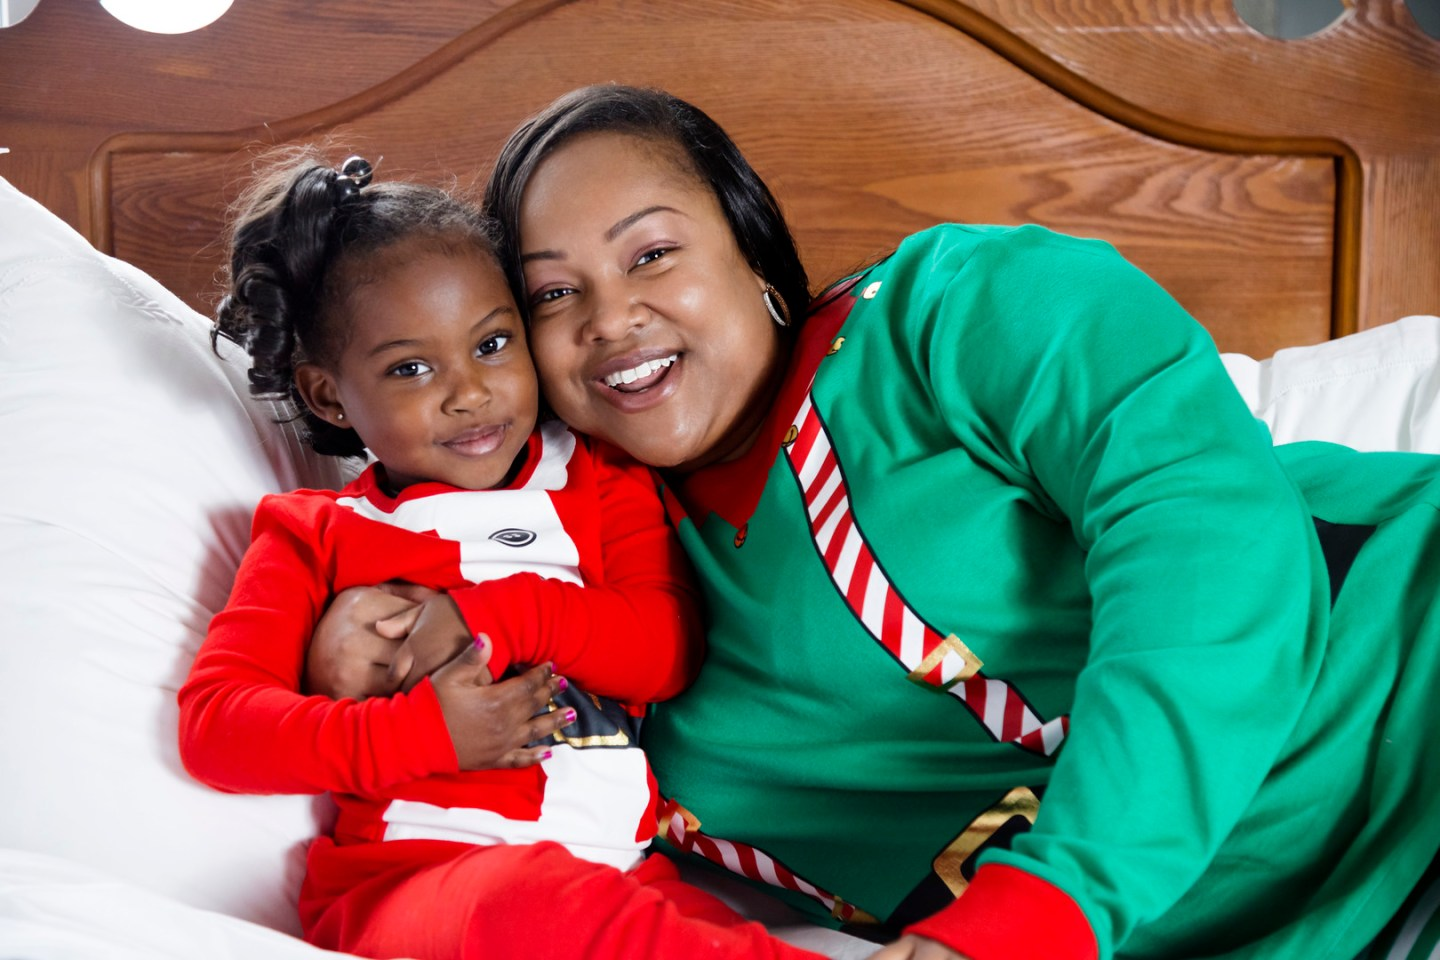 m52fhs2eg1x5eo33su36_big Mommy & Me Christmas PJ Session in Greensboro, NC